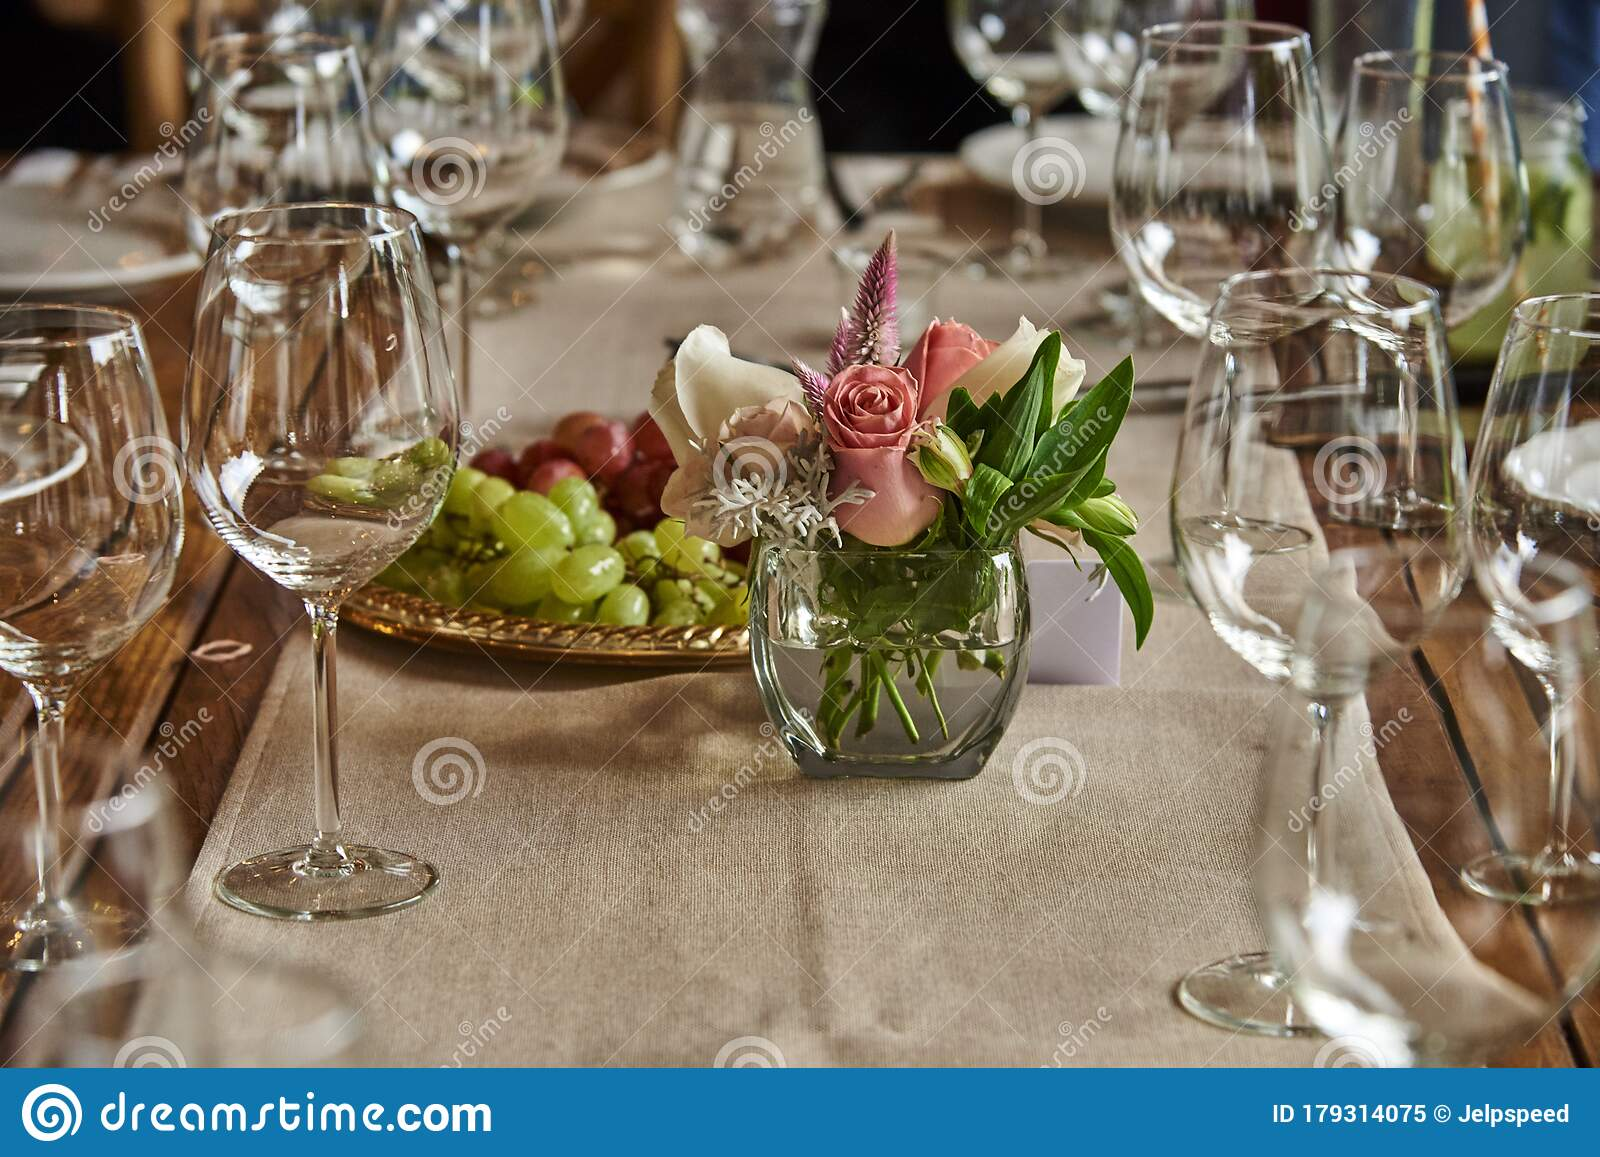 Small Table Flower Yellow Luxury Decoration With Glass Globets Wedding Event Party At Night Coctel Table With Candles Stock Image Image Of Beauty Card 179314075